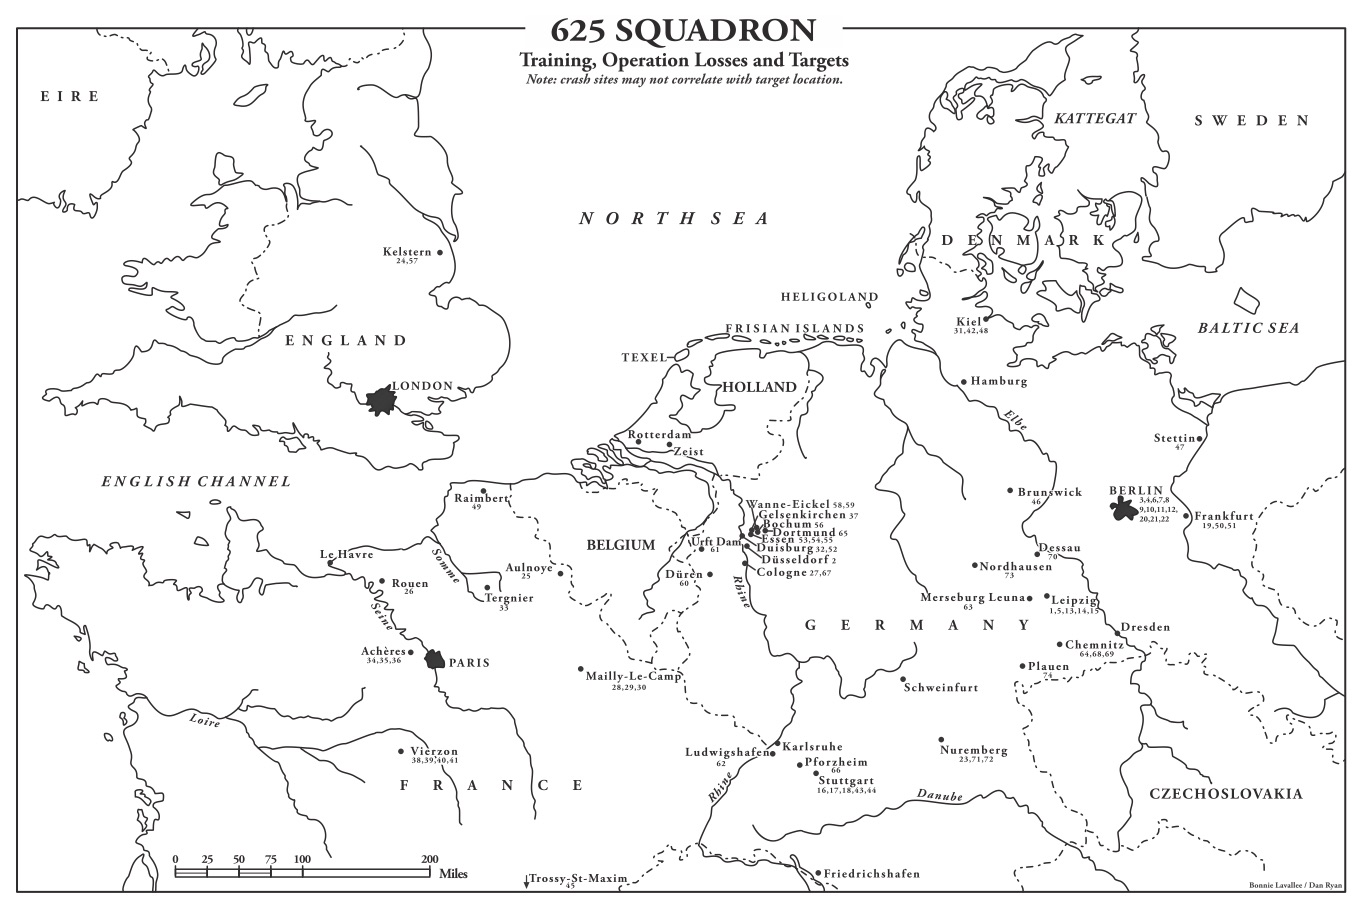 Map of 625 Squadron Training, Operational Losses and Targets